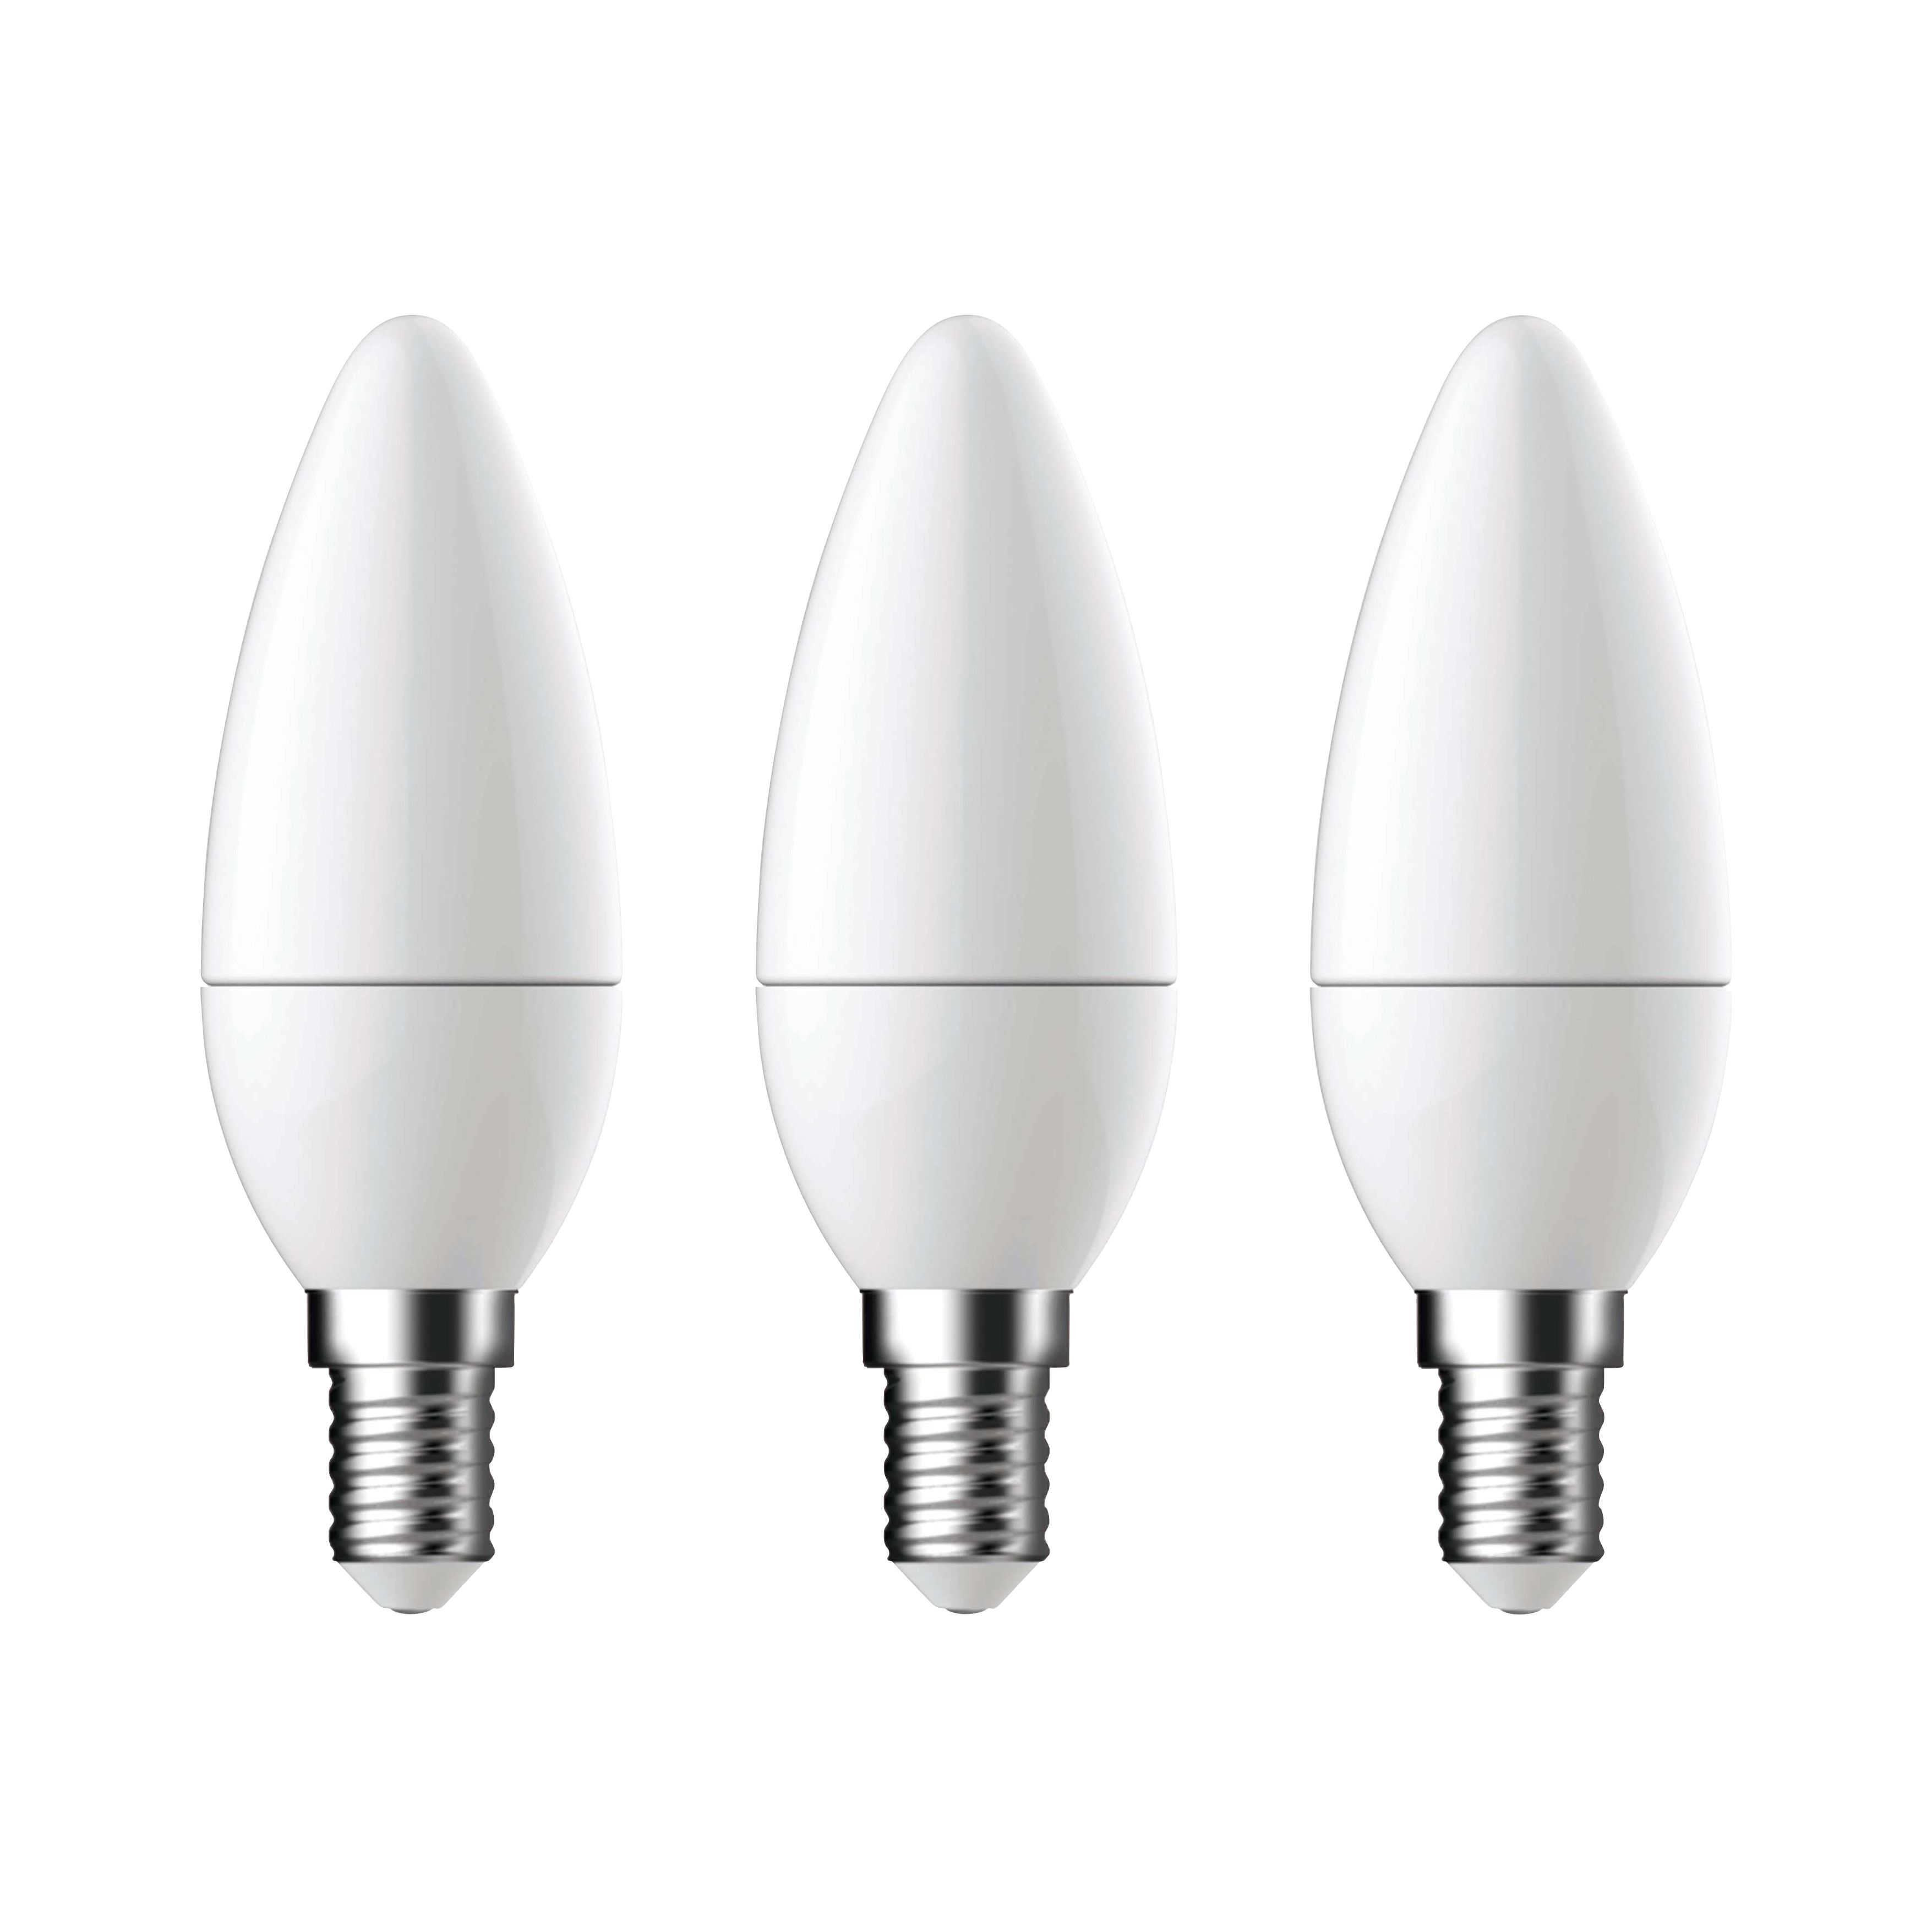 Diall E14 470lm Led Candle Light Bulb, Pack Of 3